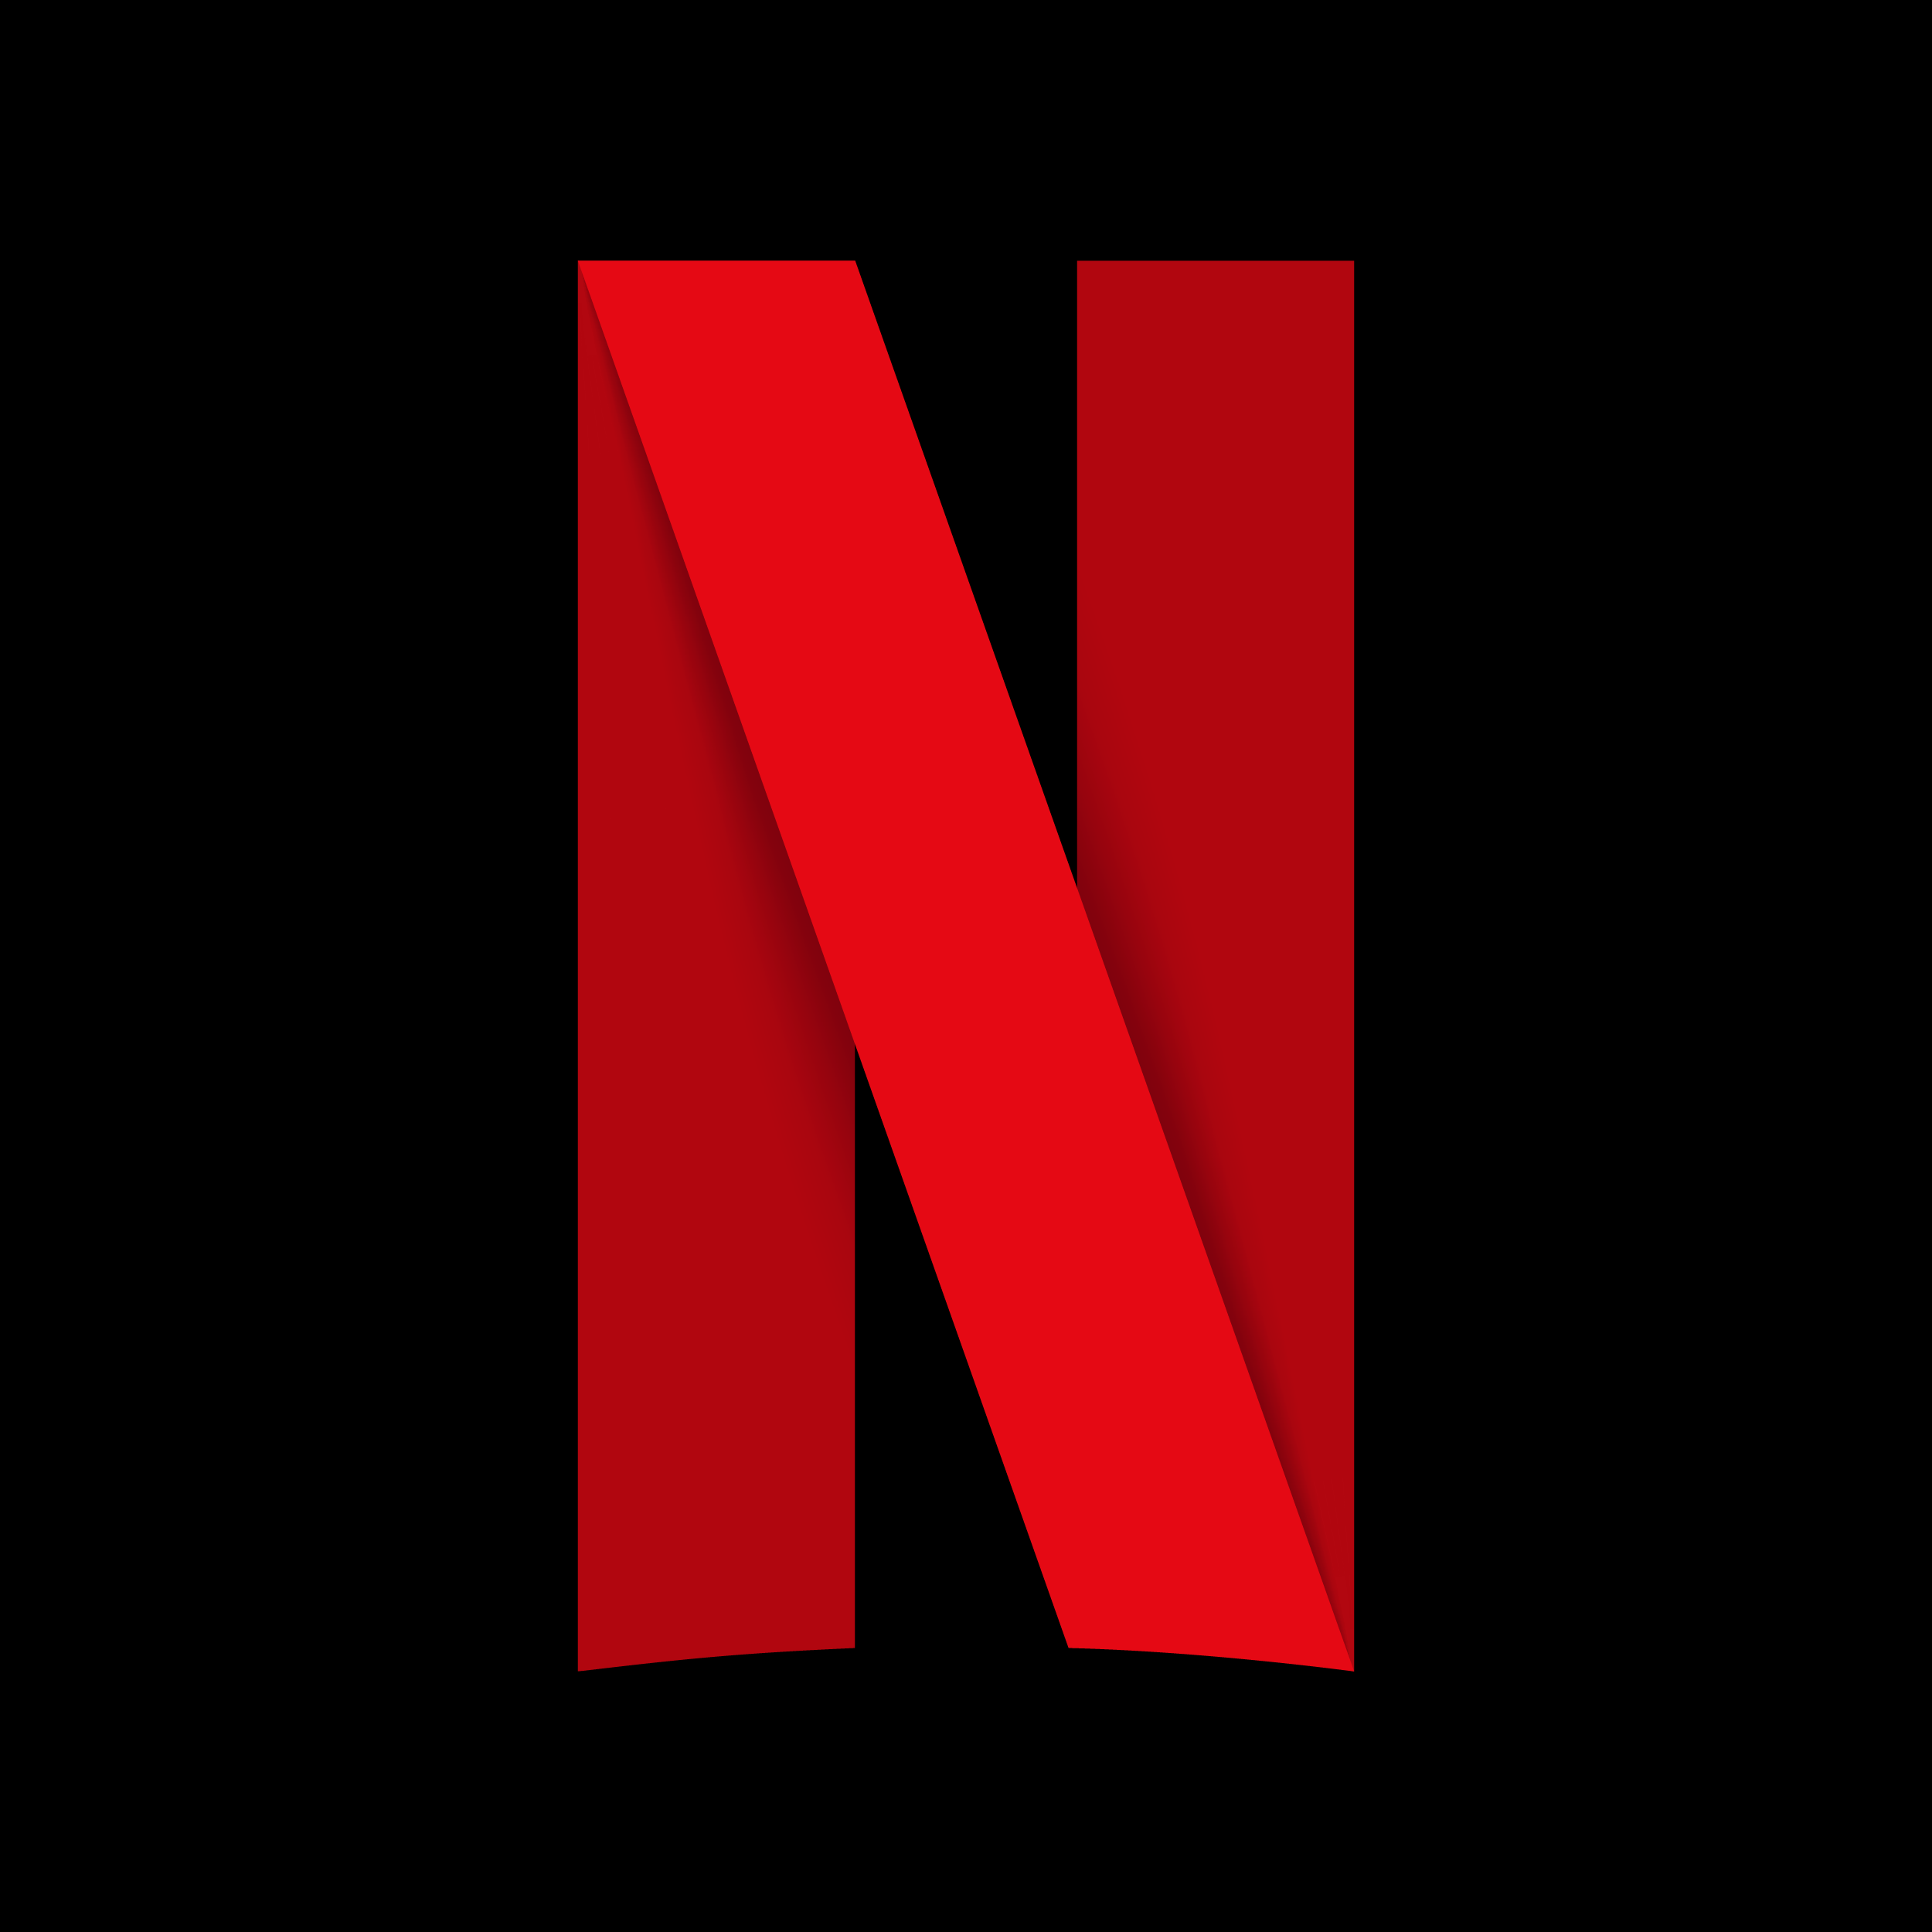 The best movies on Netflix that no one knows about. https://www.techjunkie.com/best-movies-netflix-nobody-knows/slideshow/?utm_medium=social&utm_source=facebook&utm_campaign=best-movies-netflix-nobody-knows-slideshow-&utm_term=52944